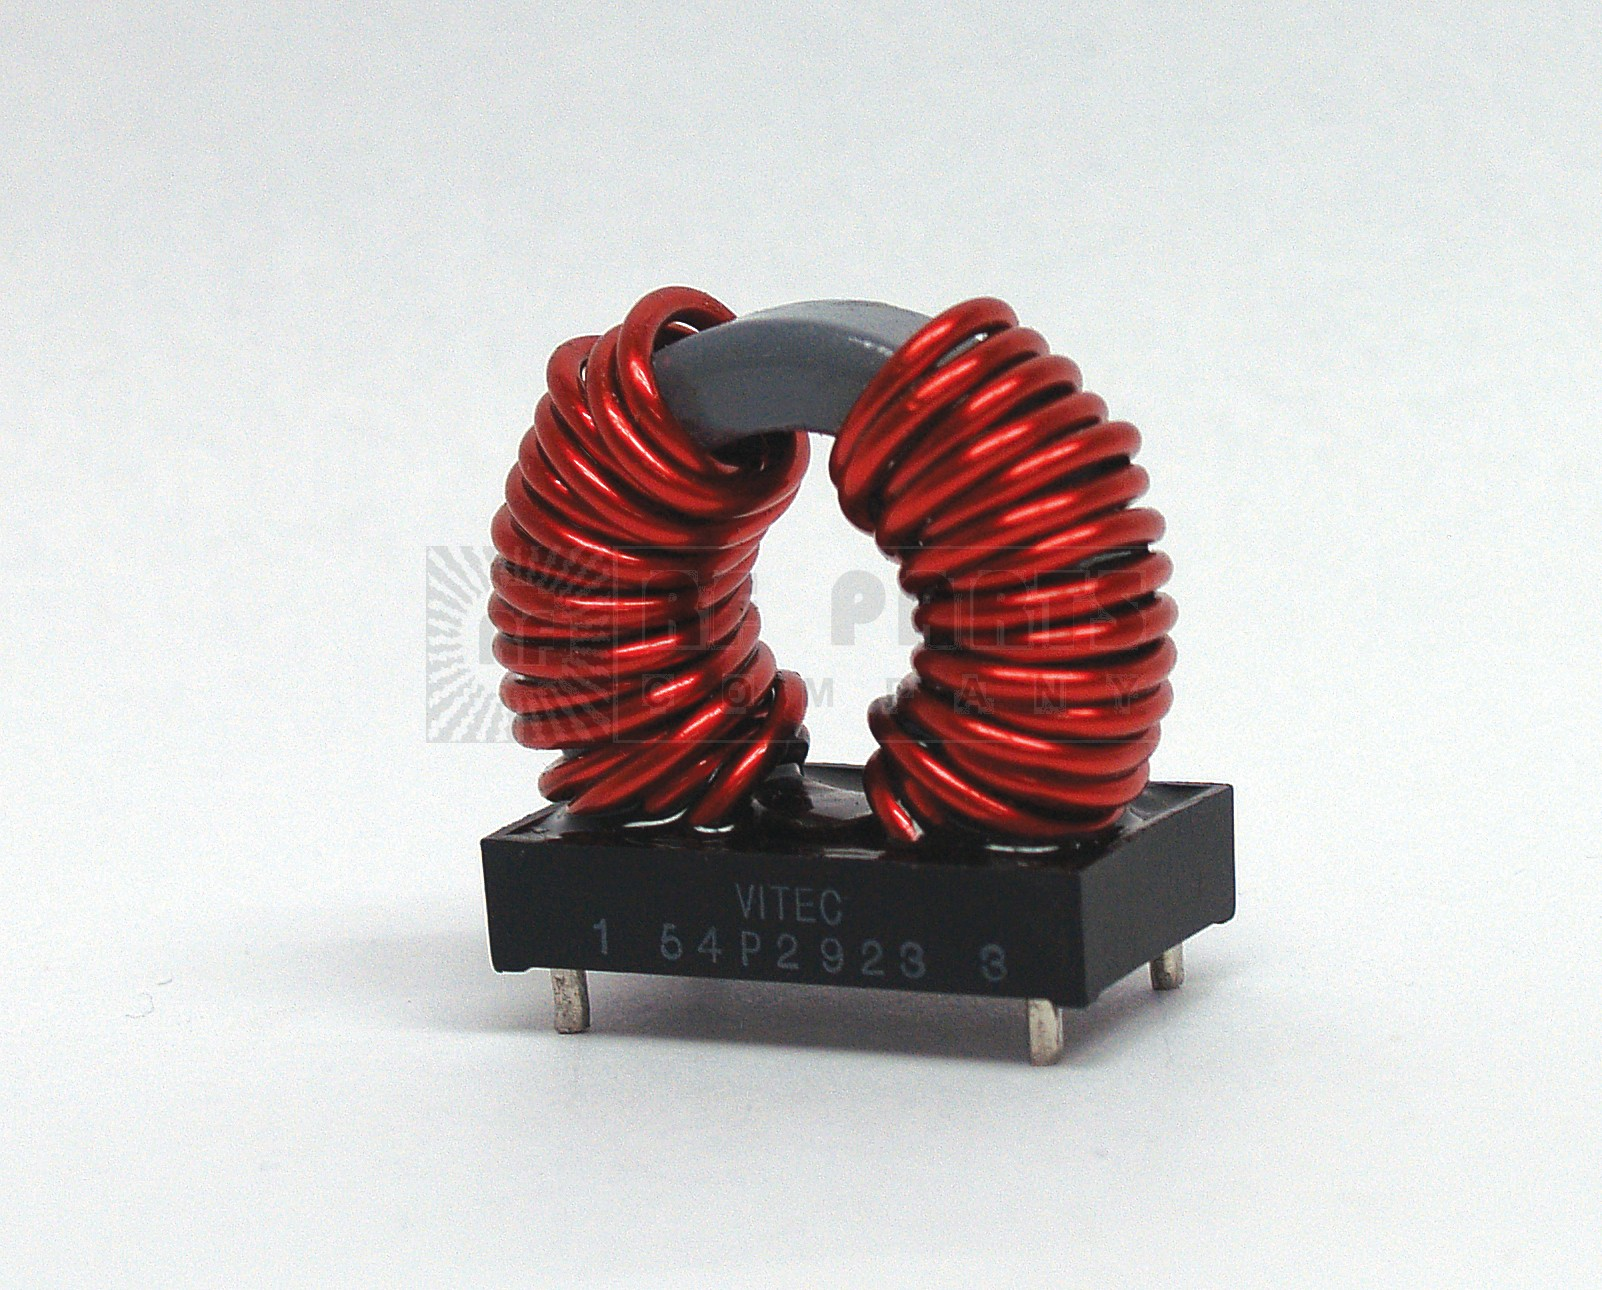 54P2923 Emi common-mode inductor